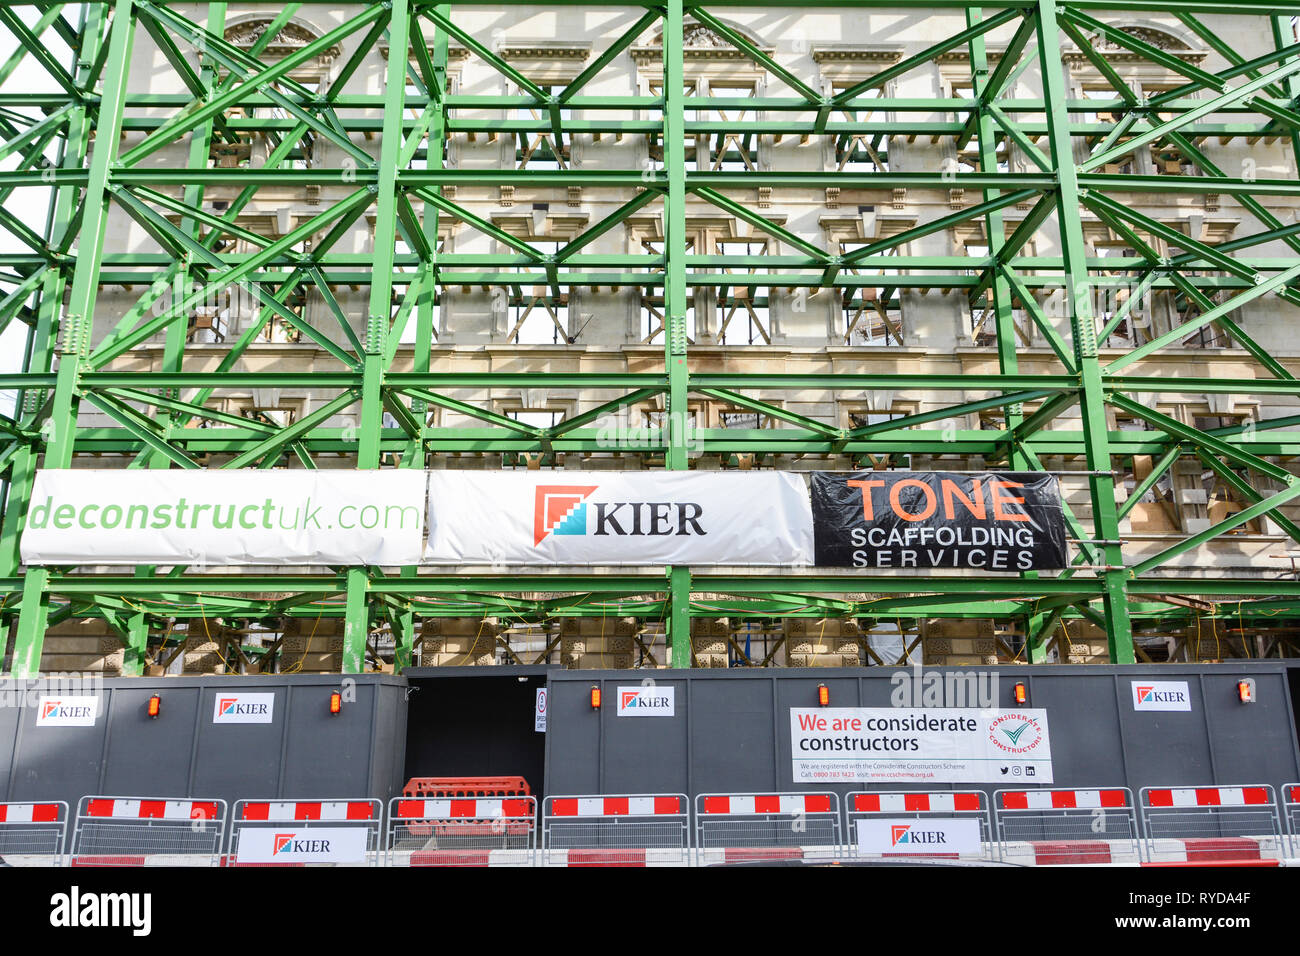 Kier Group plc construction and scaffolding outside the Nuffield Health private patients facility at St Bartholomew's Hospital, London, UK Stock Photo